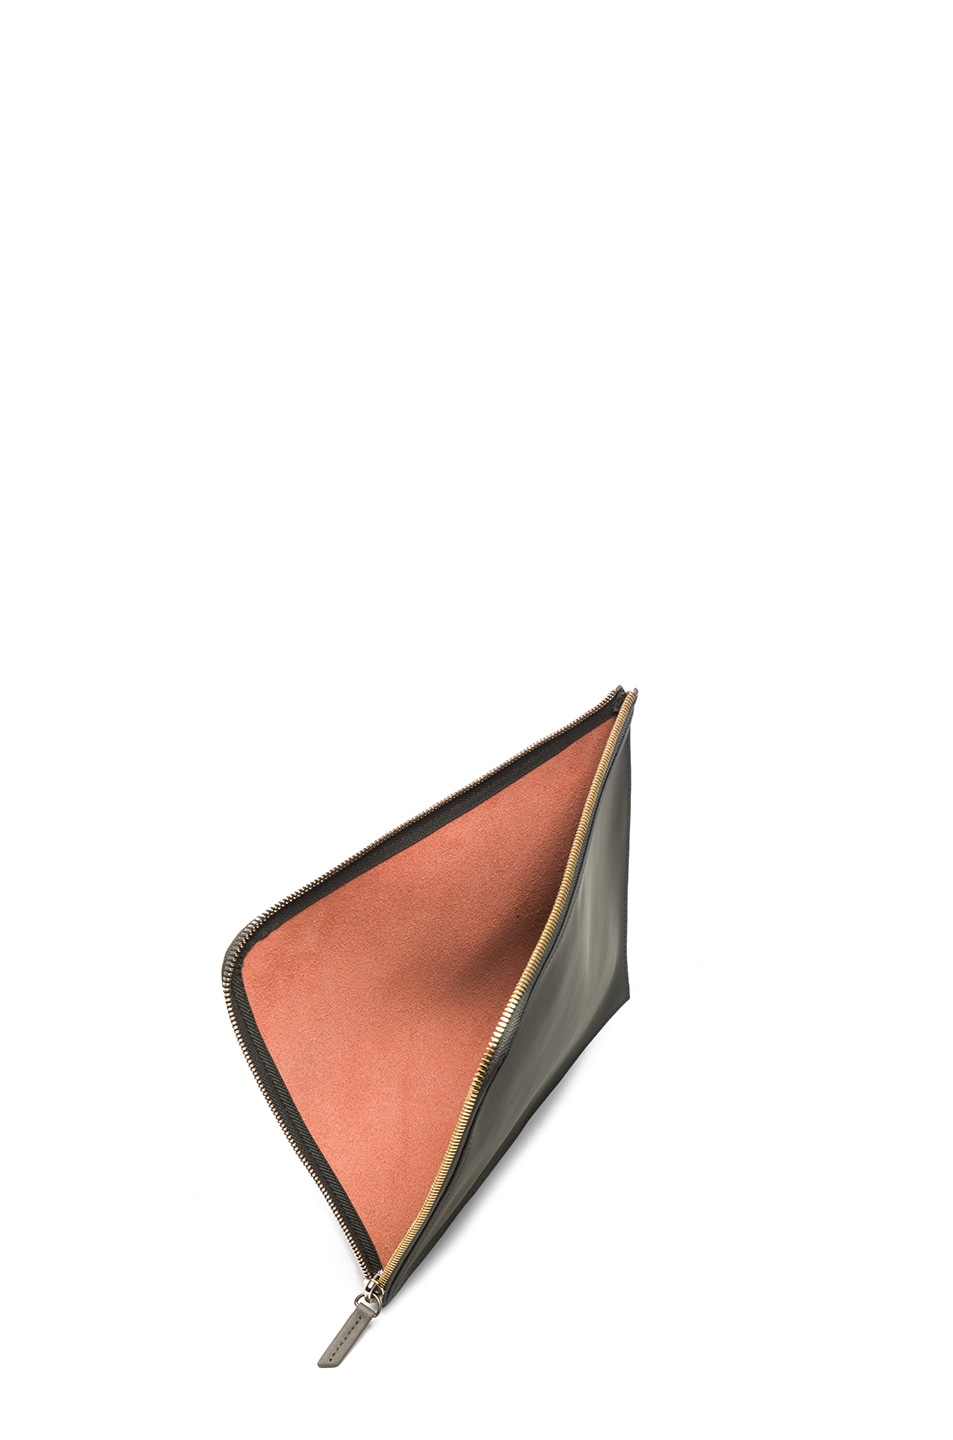 Image 4 of Want Les Essentiels De La Vie Medium Sky Harbo Leather Zip Pouch in Molten Orange